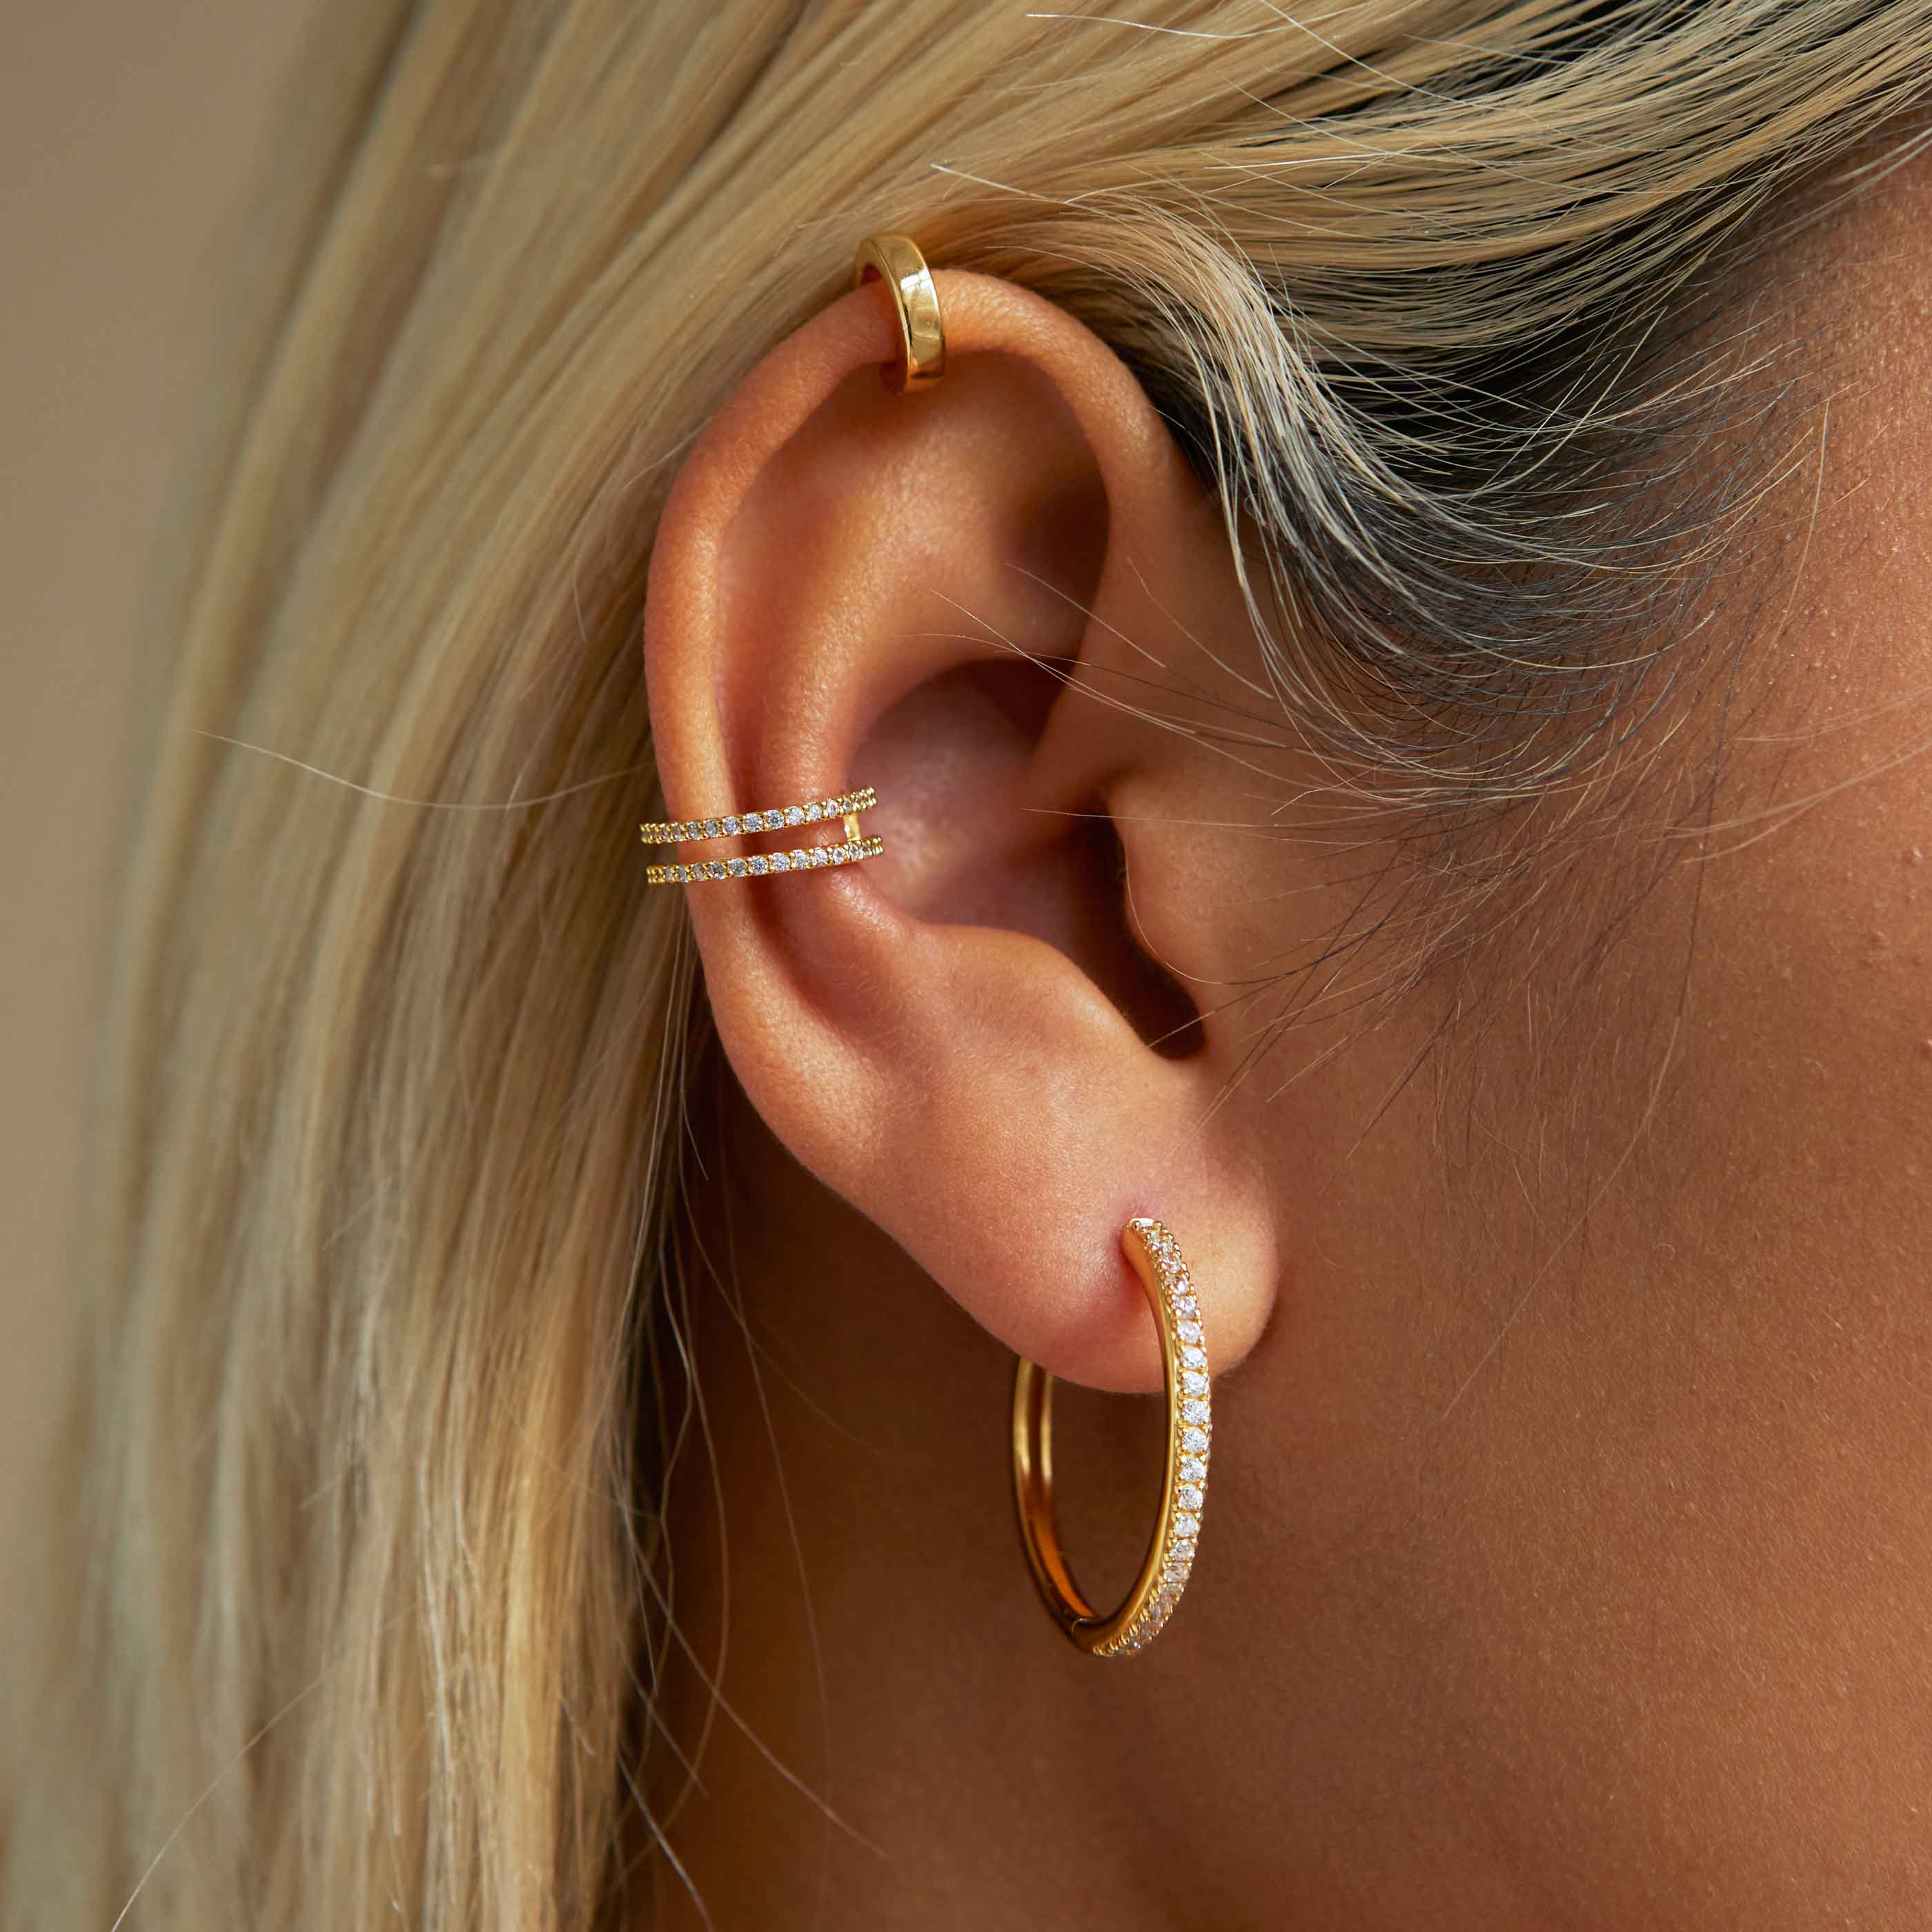 rose gold colored no pierced ears necessary pair or single contemporary comfortable shiny edgy Copper and Silver EarCuffs sassy